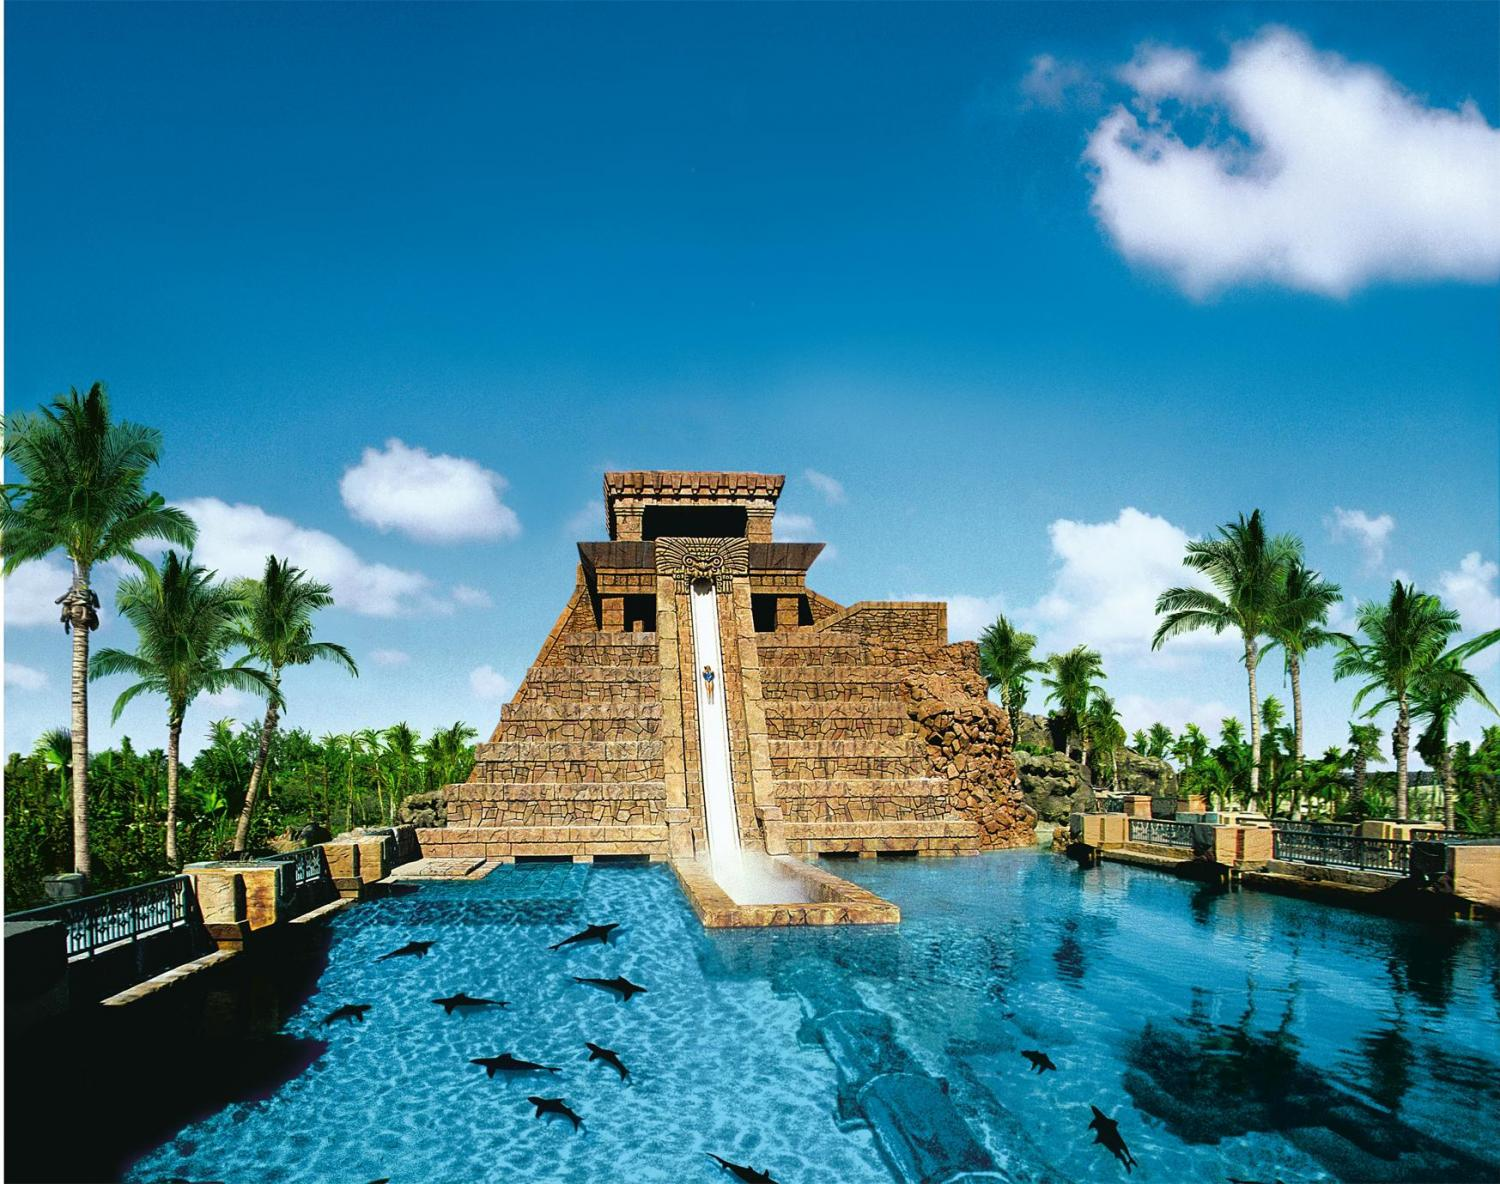 Atlantis Leap of Faith